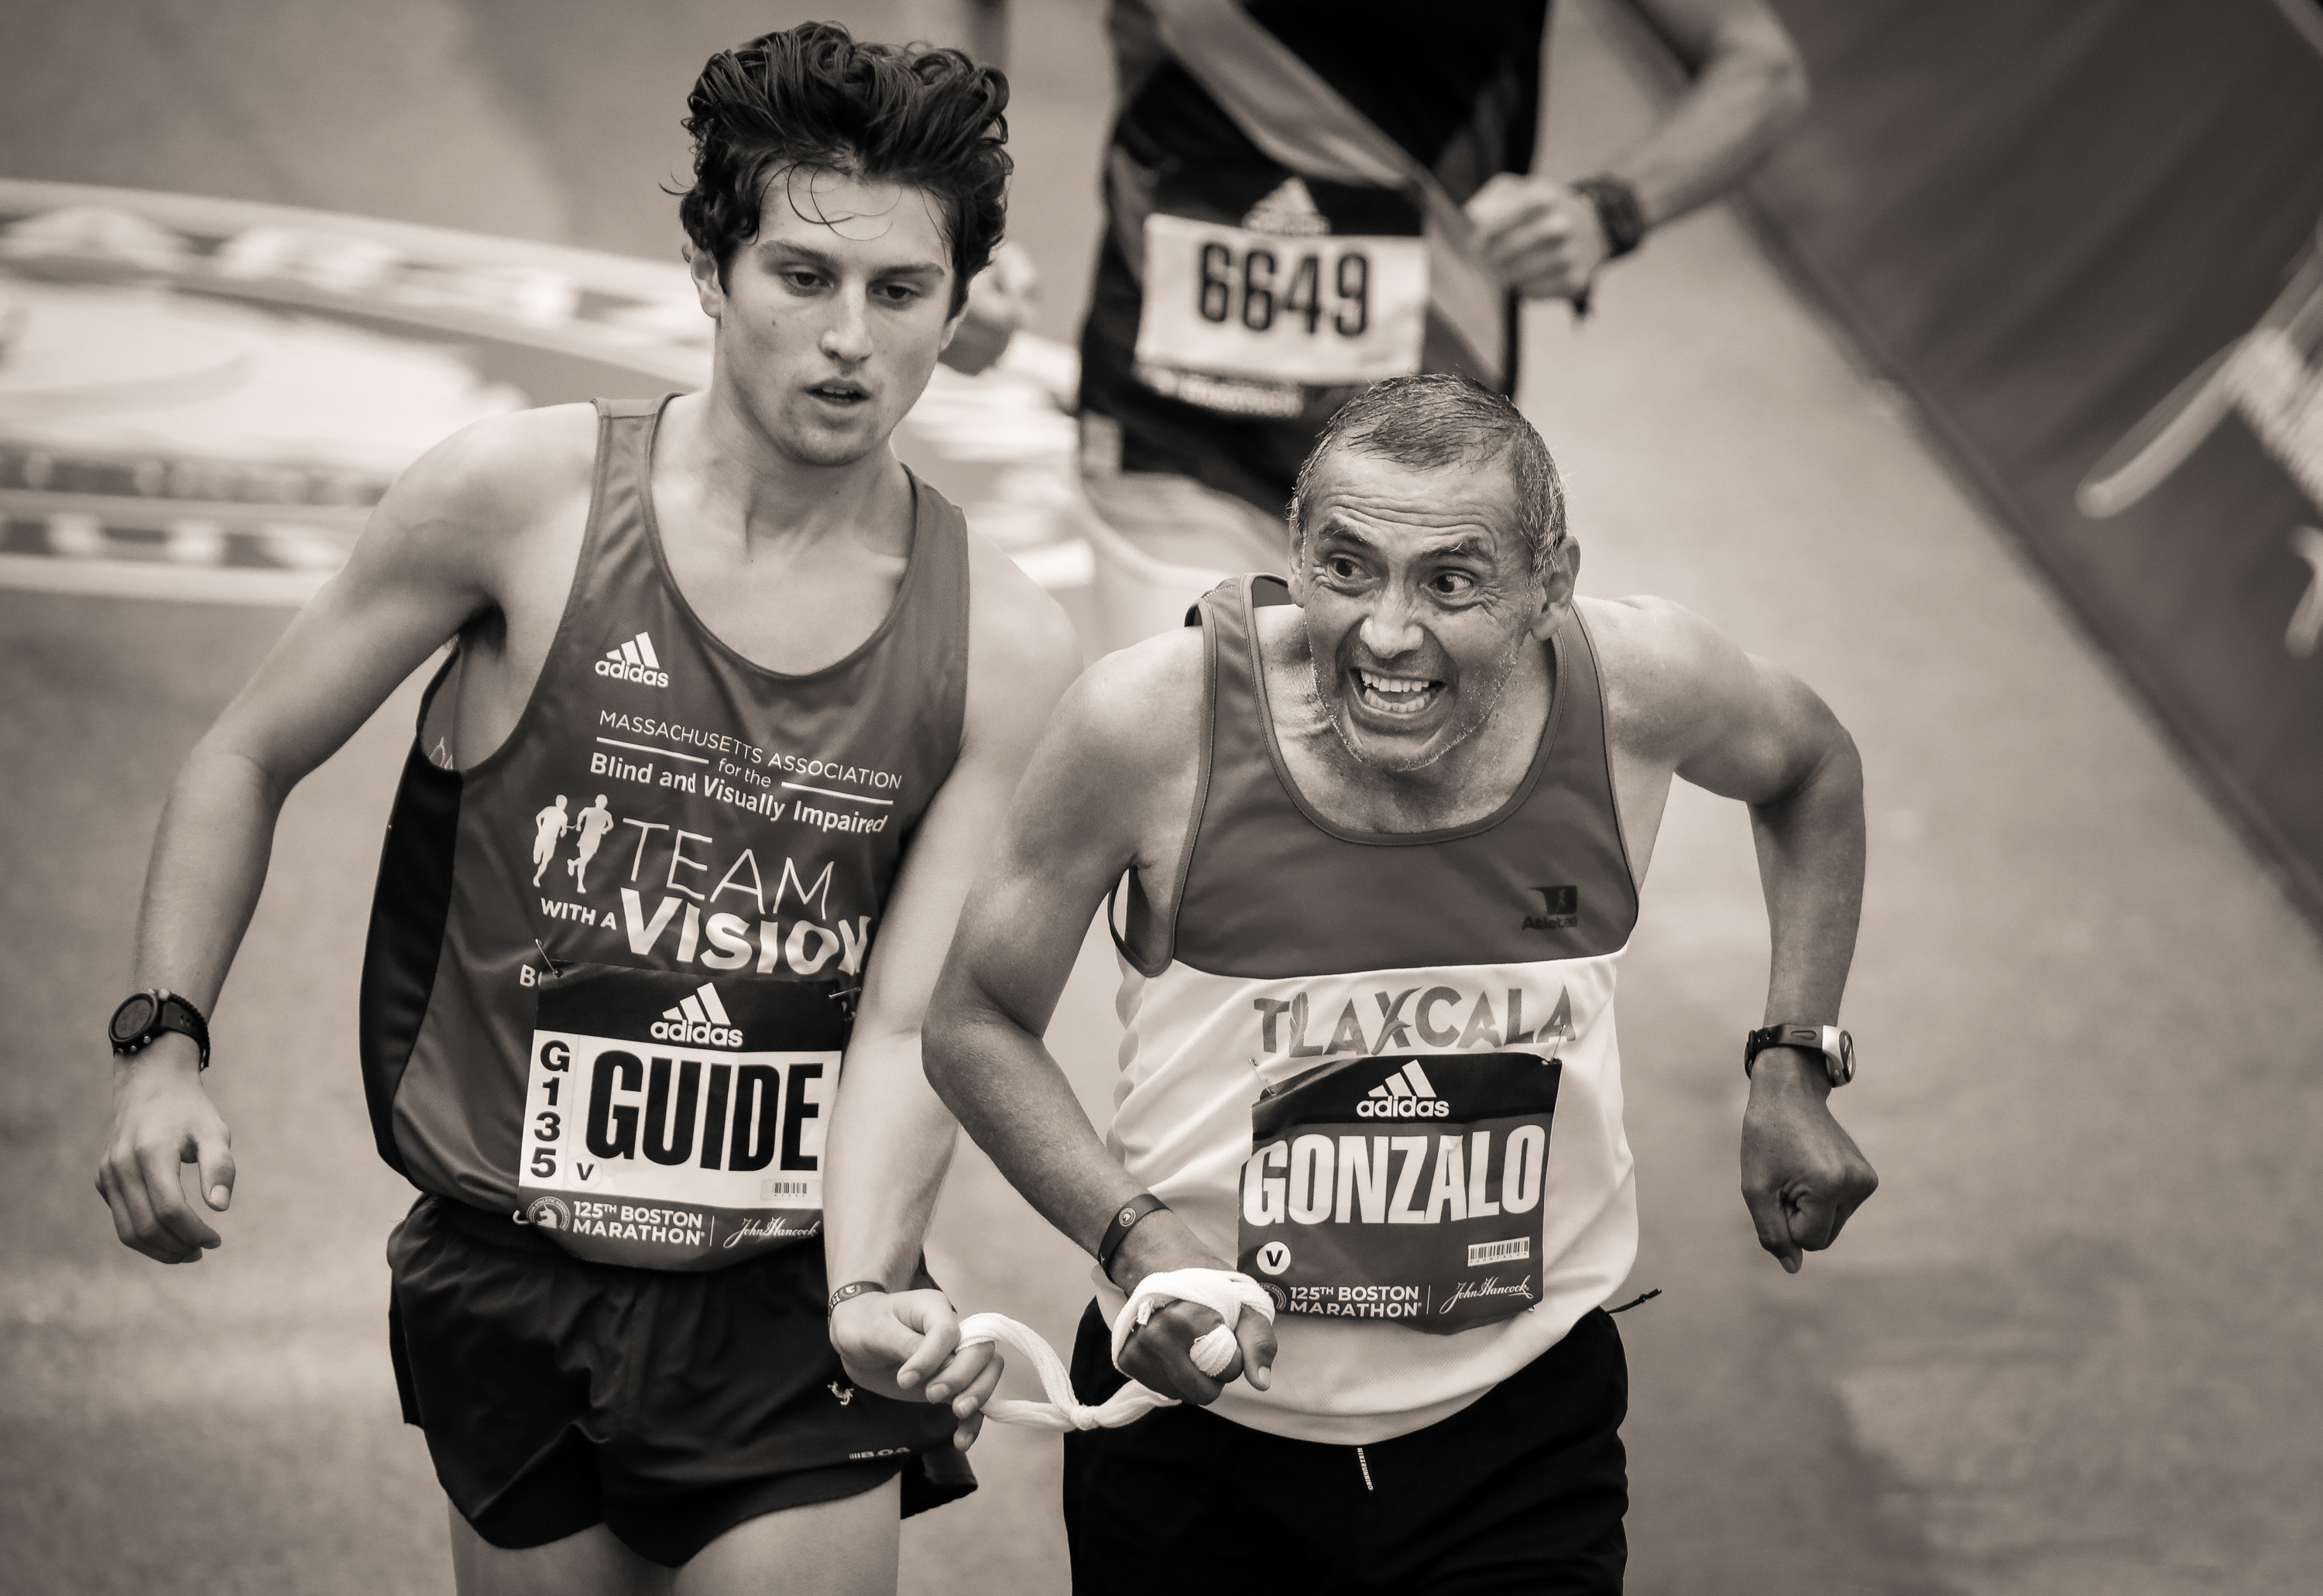 A visually impaired runner and guide cross the finish line